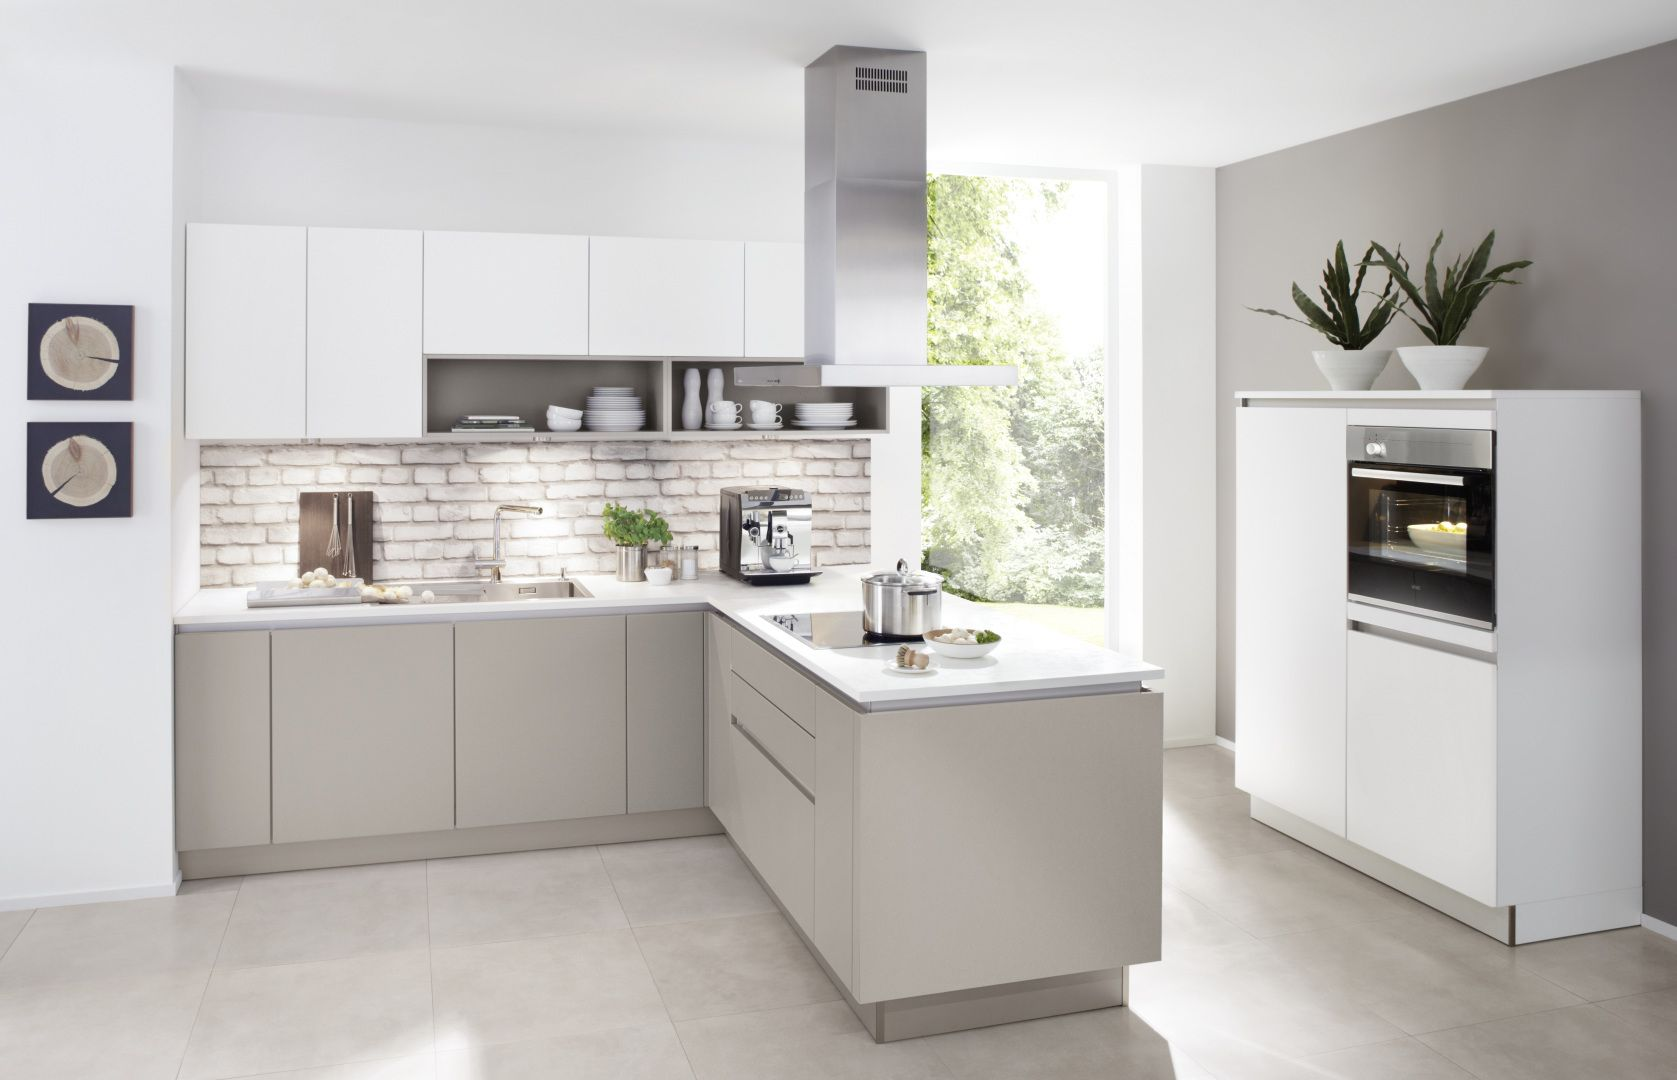 Nolte Küche 2015 Nolte Kitchens Visit The Uk S Largest Nolte Kitchen Showroom